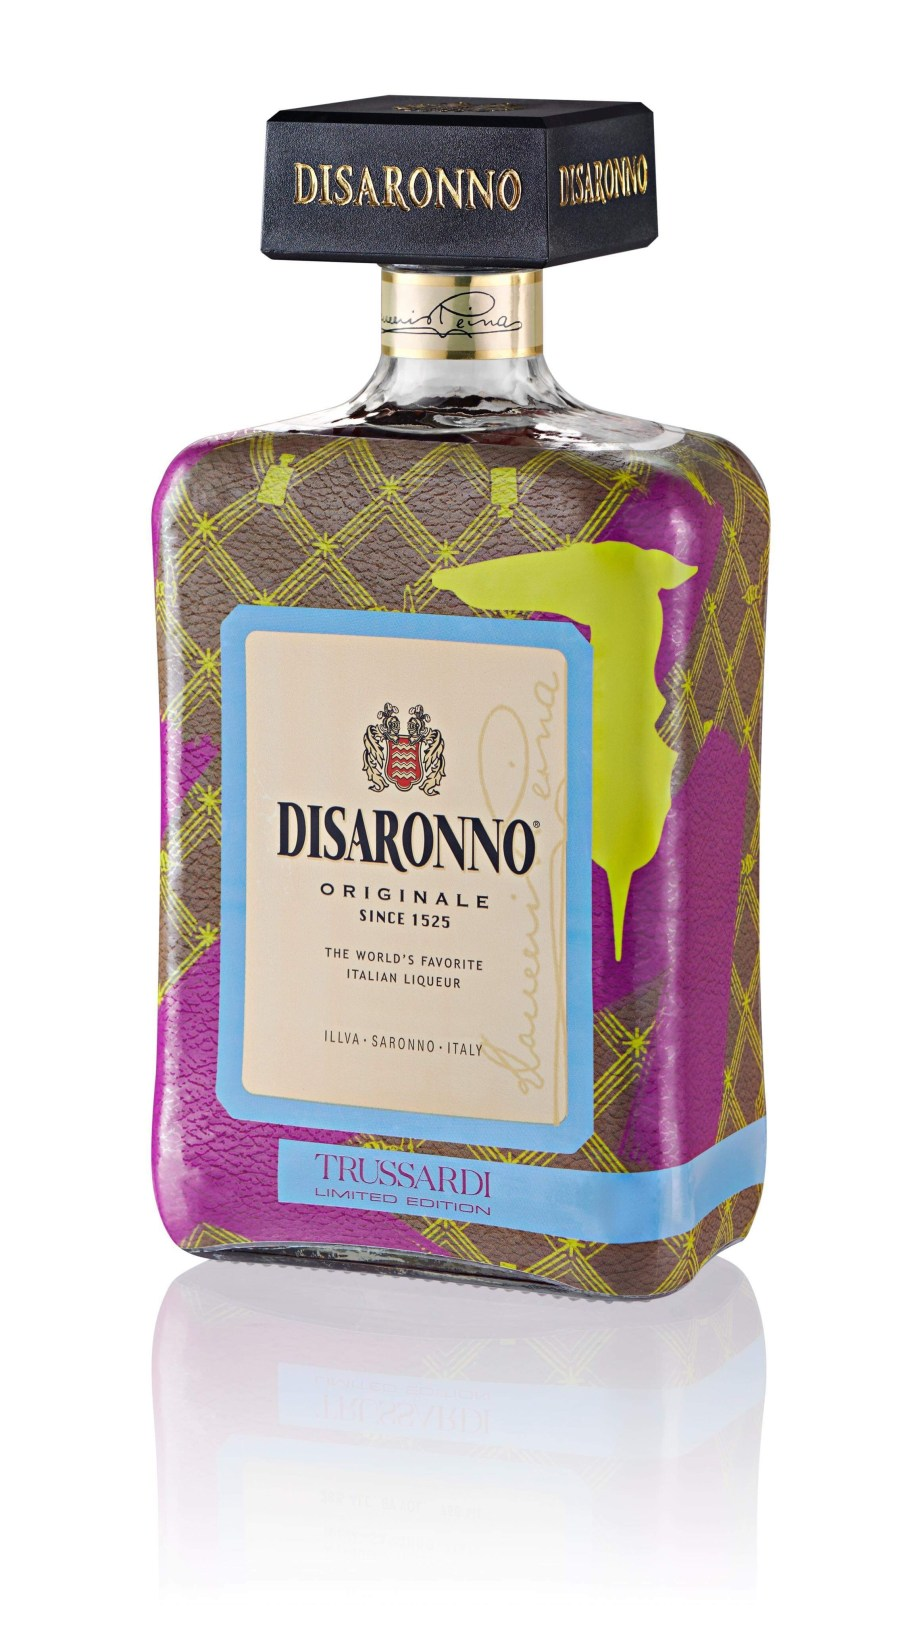 A short brown glass bottle with different coloured splodges all over it and a brown rectangular lid full of some amber coloured liquid with a label that has disaronno since 1525 written in bold black writing on it, on a white background.